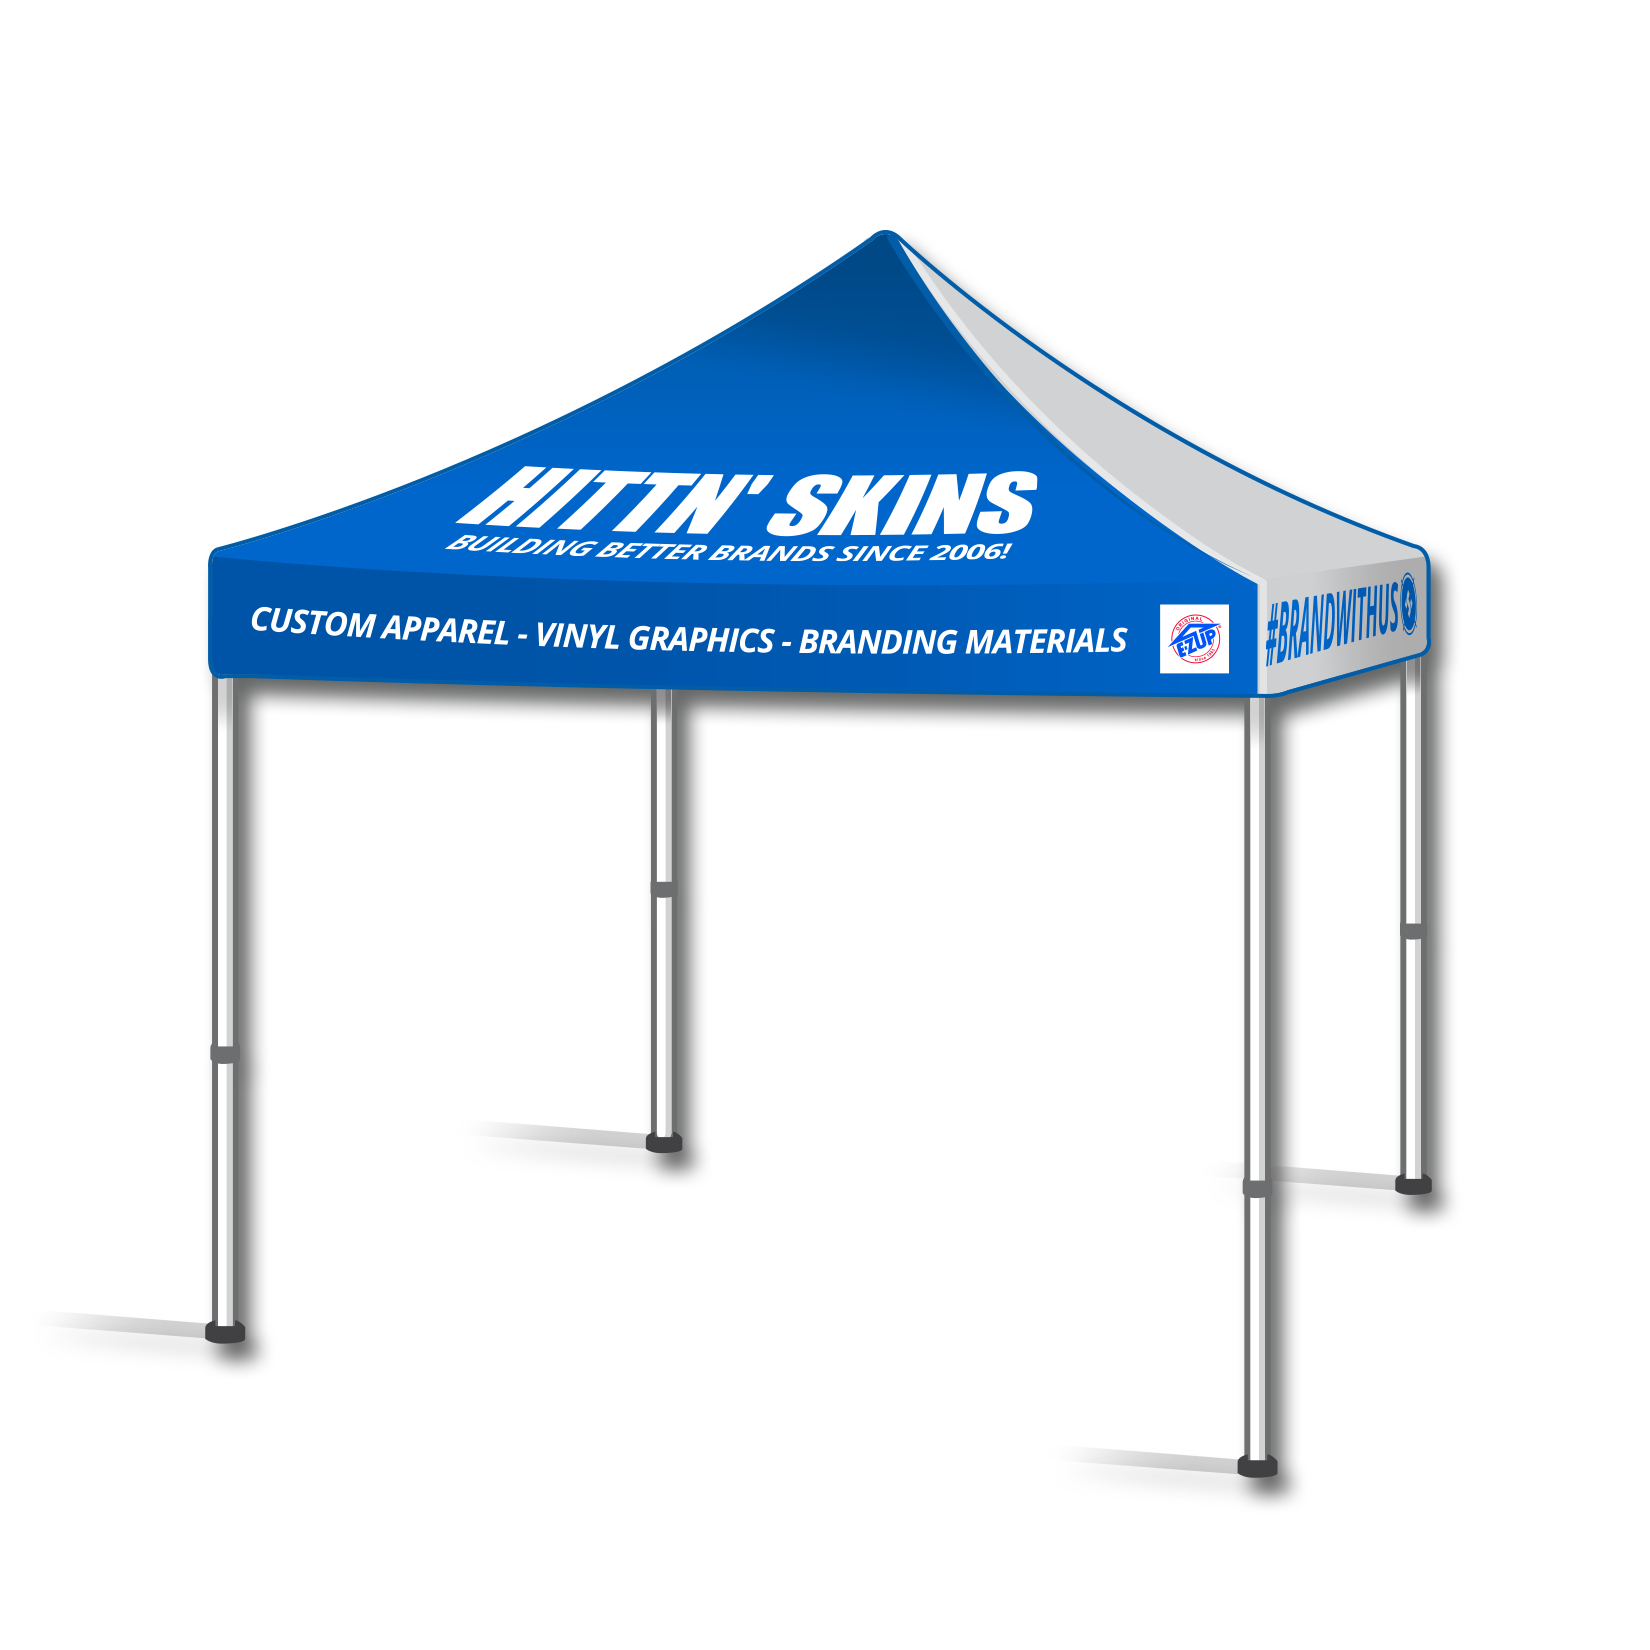 Hittn Skins Custom Printed Event Tents Amp Displays